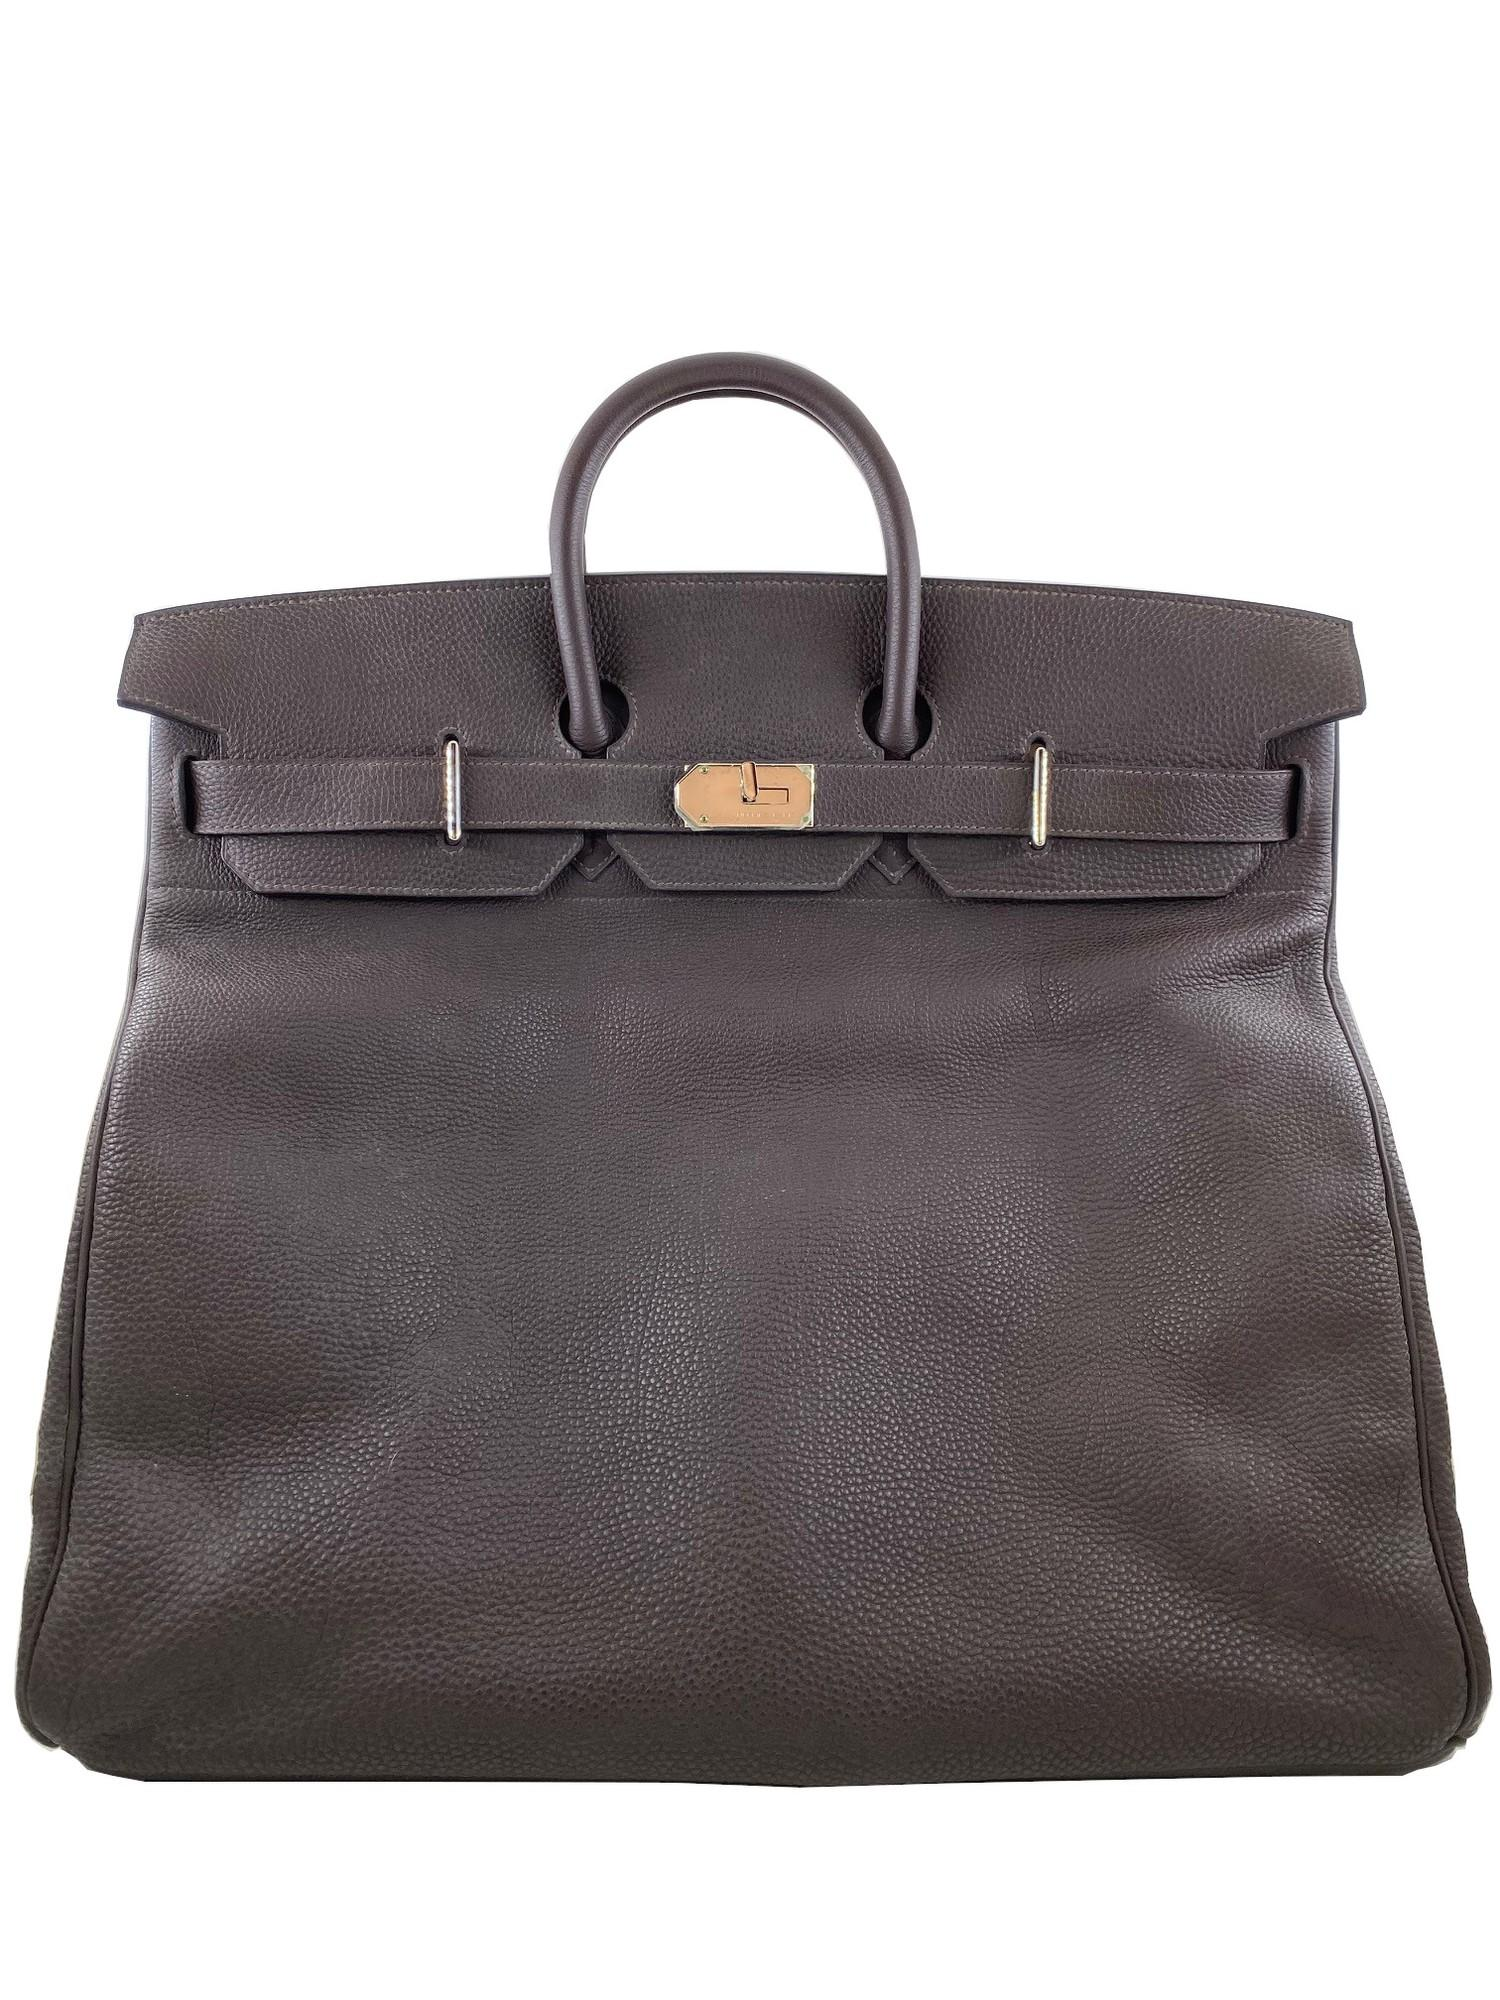 A Brown Hermes Birkin 50cm Haut A Courroies in clemence leather with gold hardware. Includes